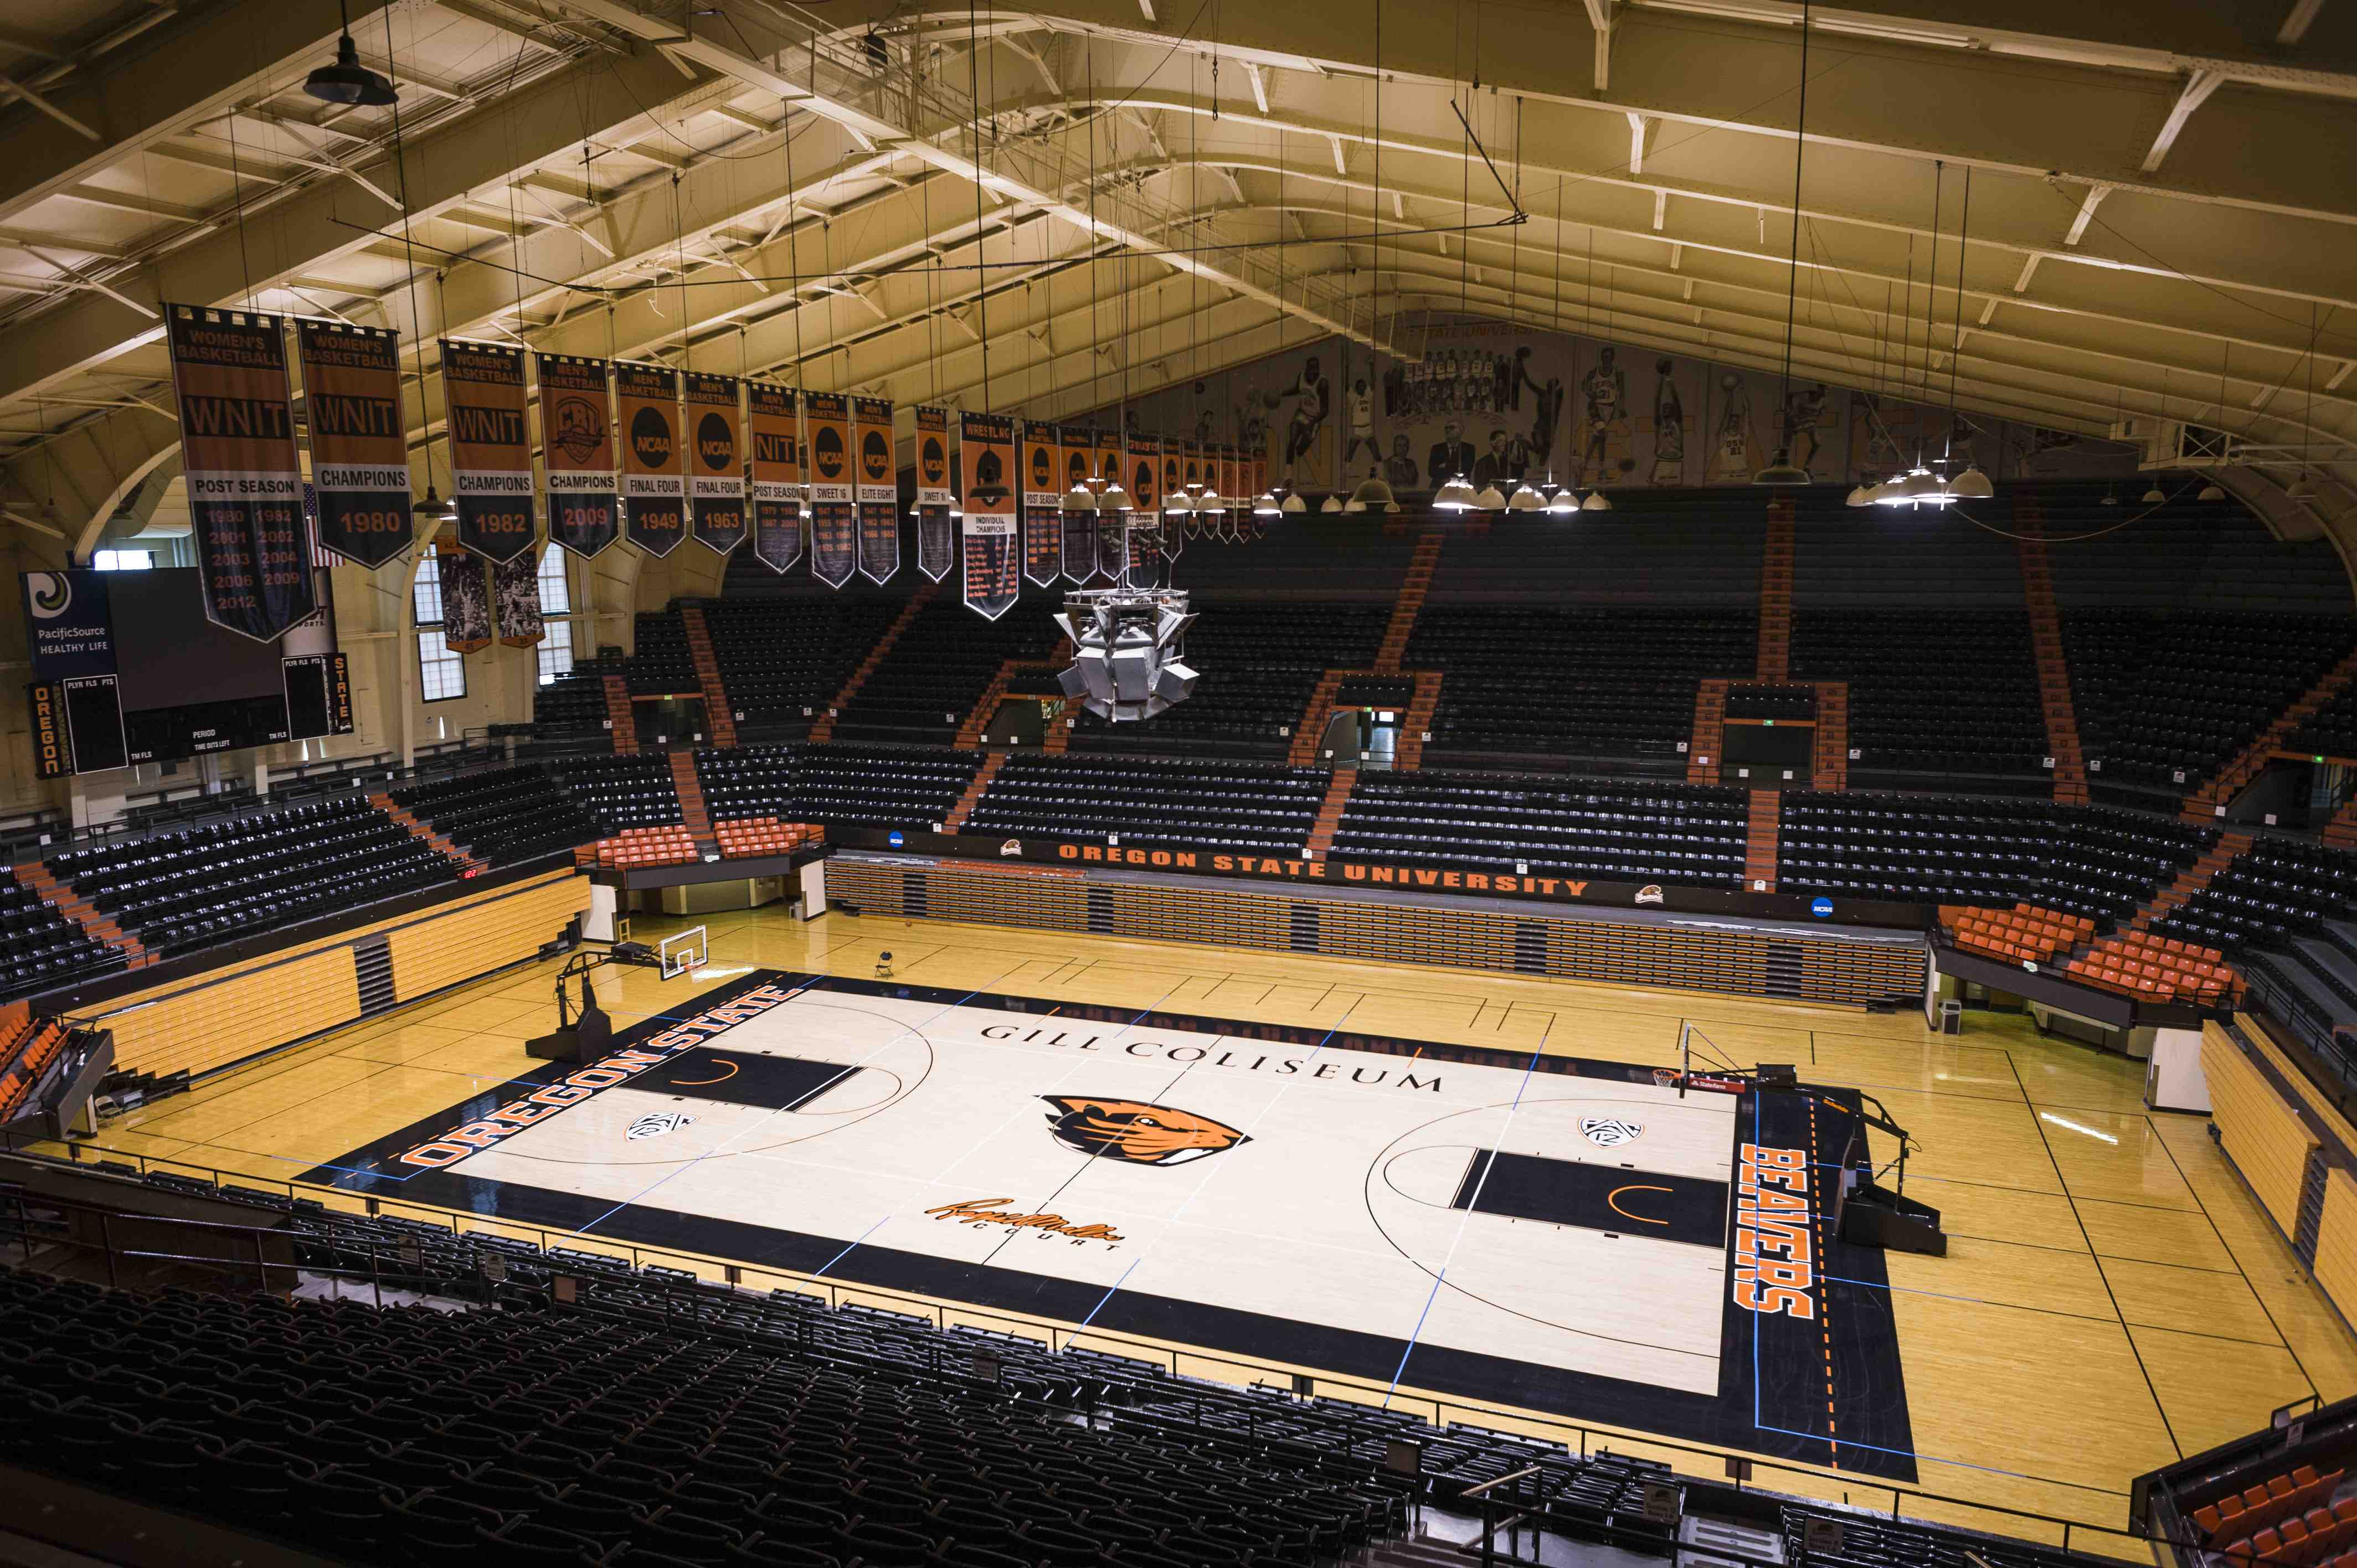 Gill Coliseum Is The Competitive Home Of The Oregon State Menu0027s Basketball,  Womenu0027s Basketball, Womenu0027s Gymnastics, Wrestling And Volleyball Teams.